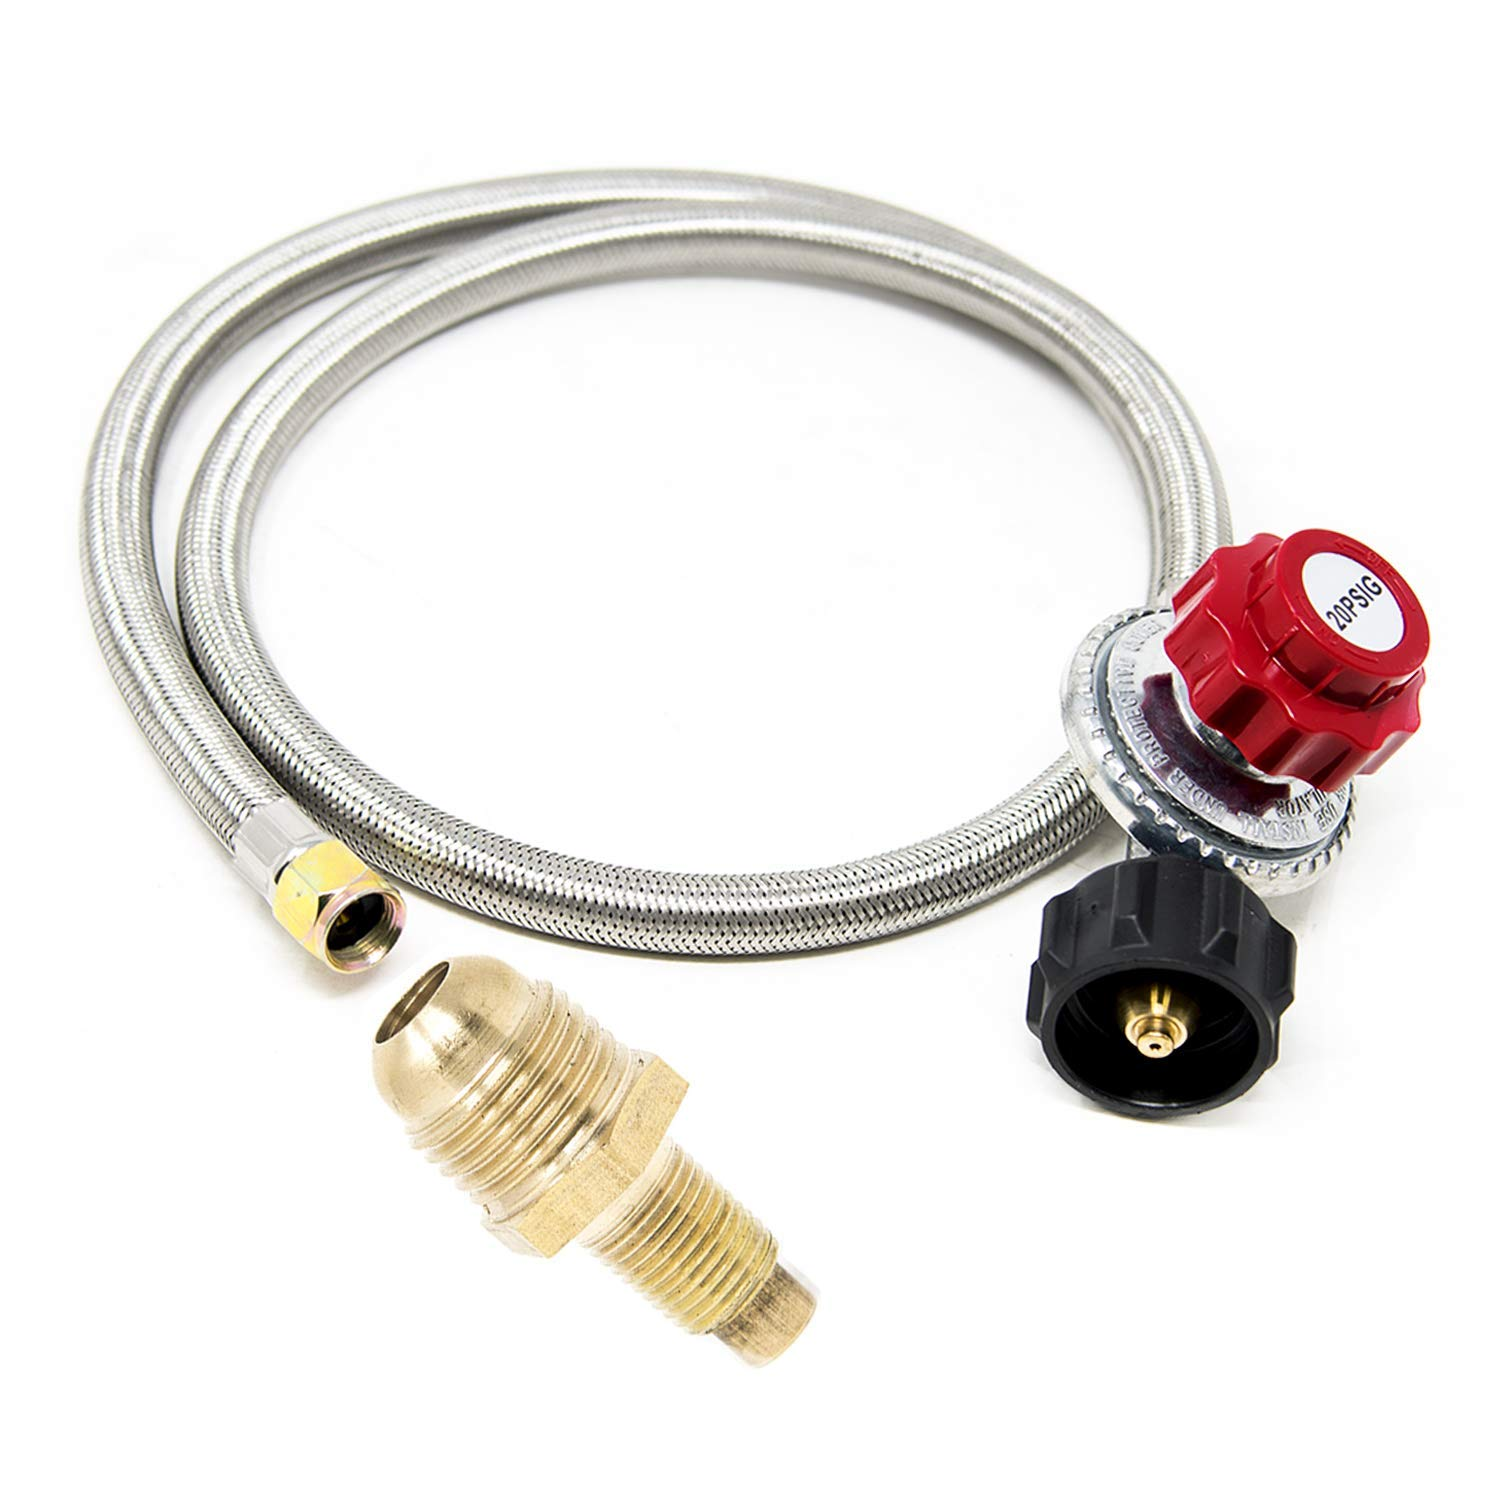 GasOne - Propane Regulator and Propane Brass Orifice - Steel Braided Hose - 4 ft High Pressure Propane 0-20 PSI Adjustable Propane Regulator with Hose QCC-1 Type - CSA Certified